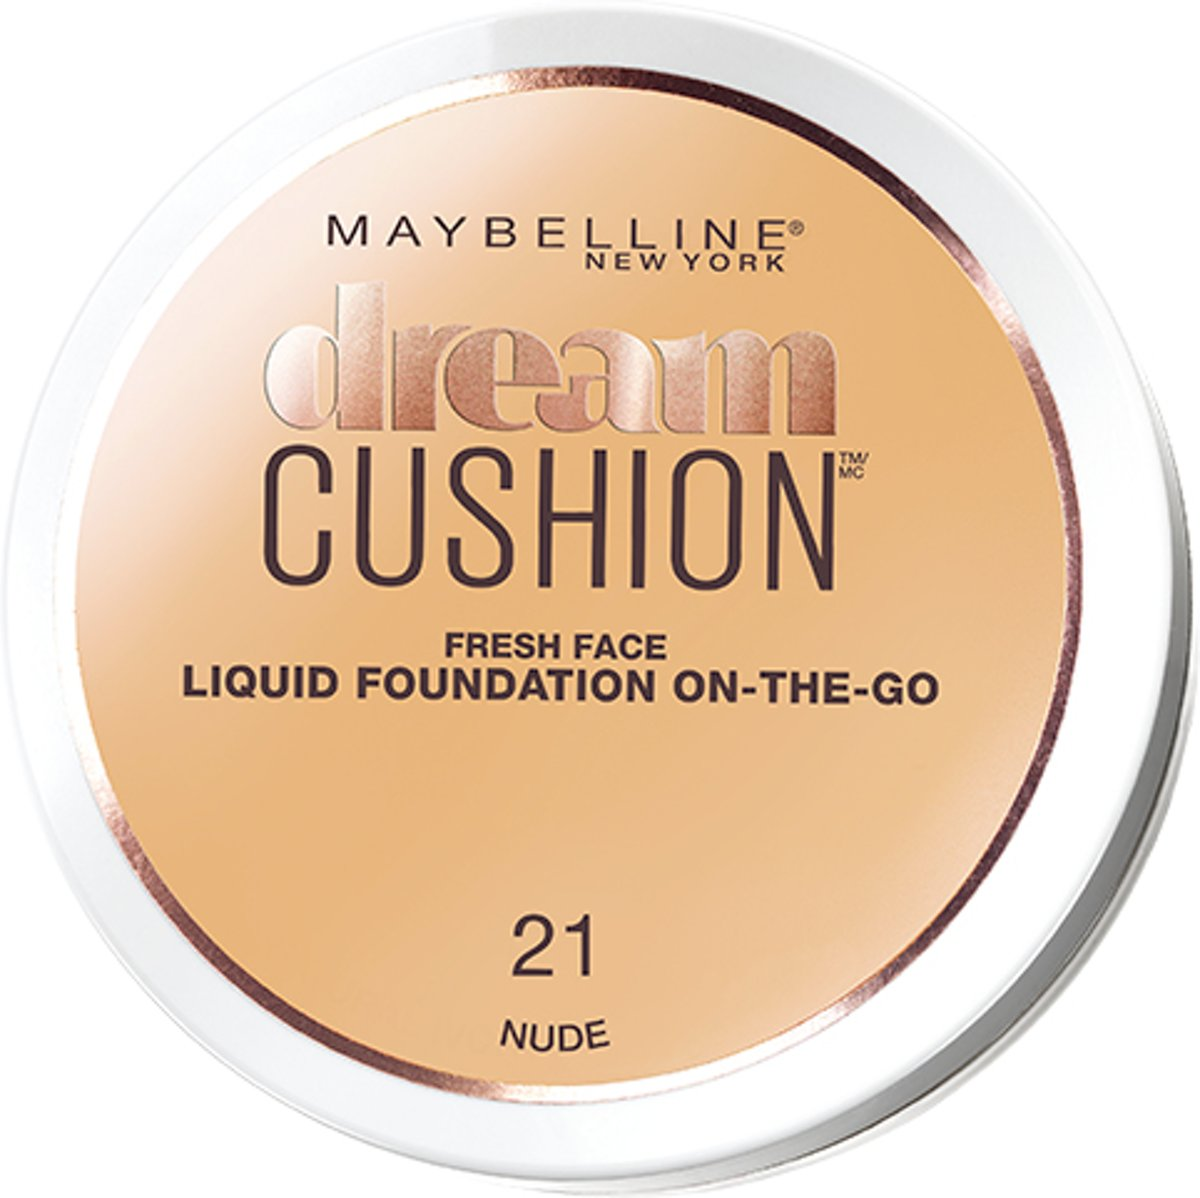 Maybelline Dream Cushion Foundation - 21 Nude - Foundation